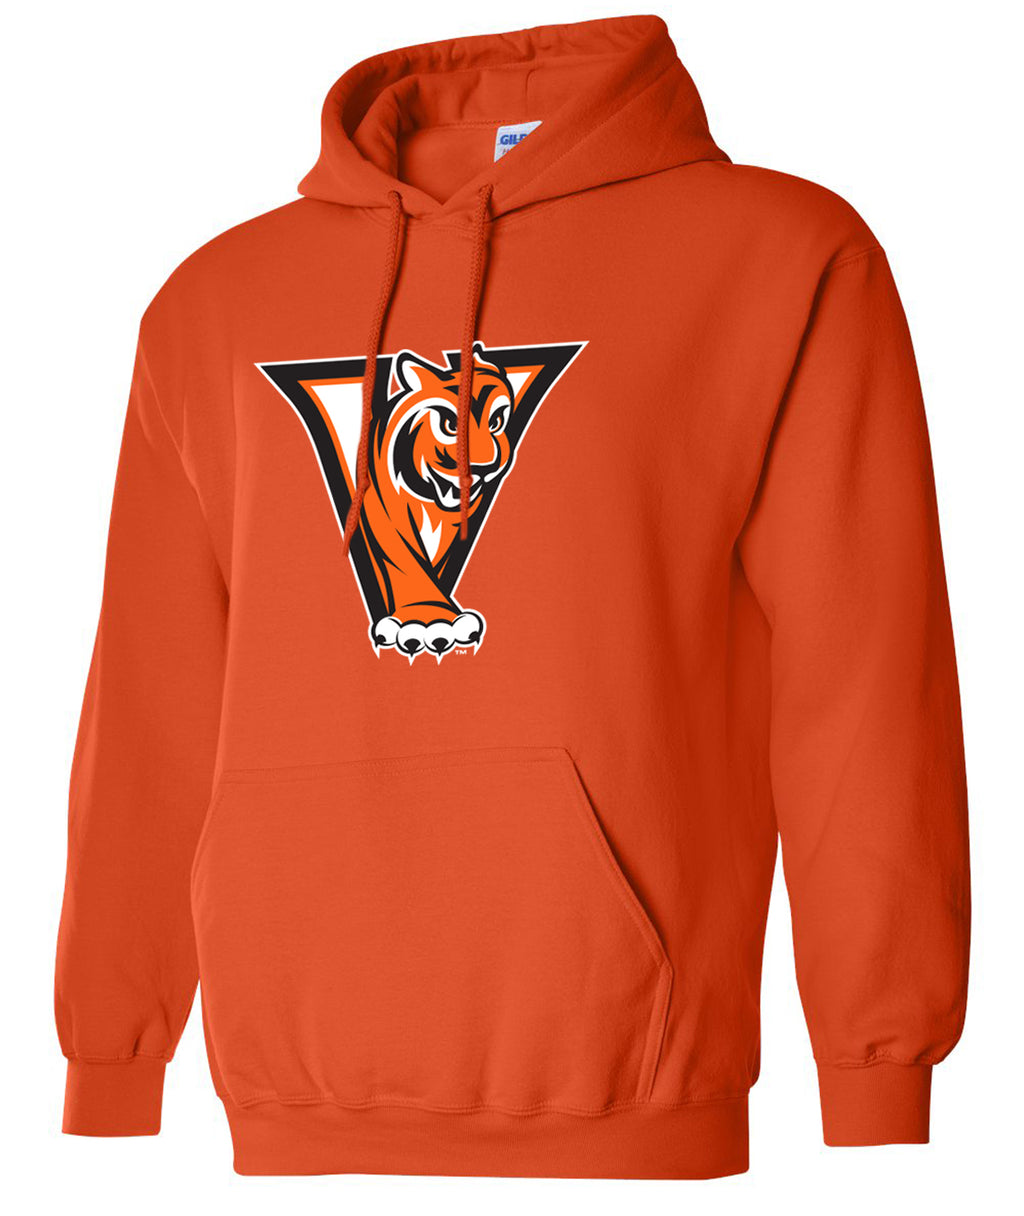 School Pride Hooded Sweatshirt